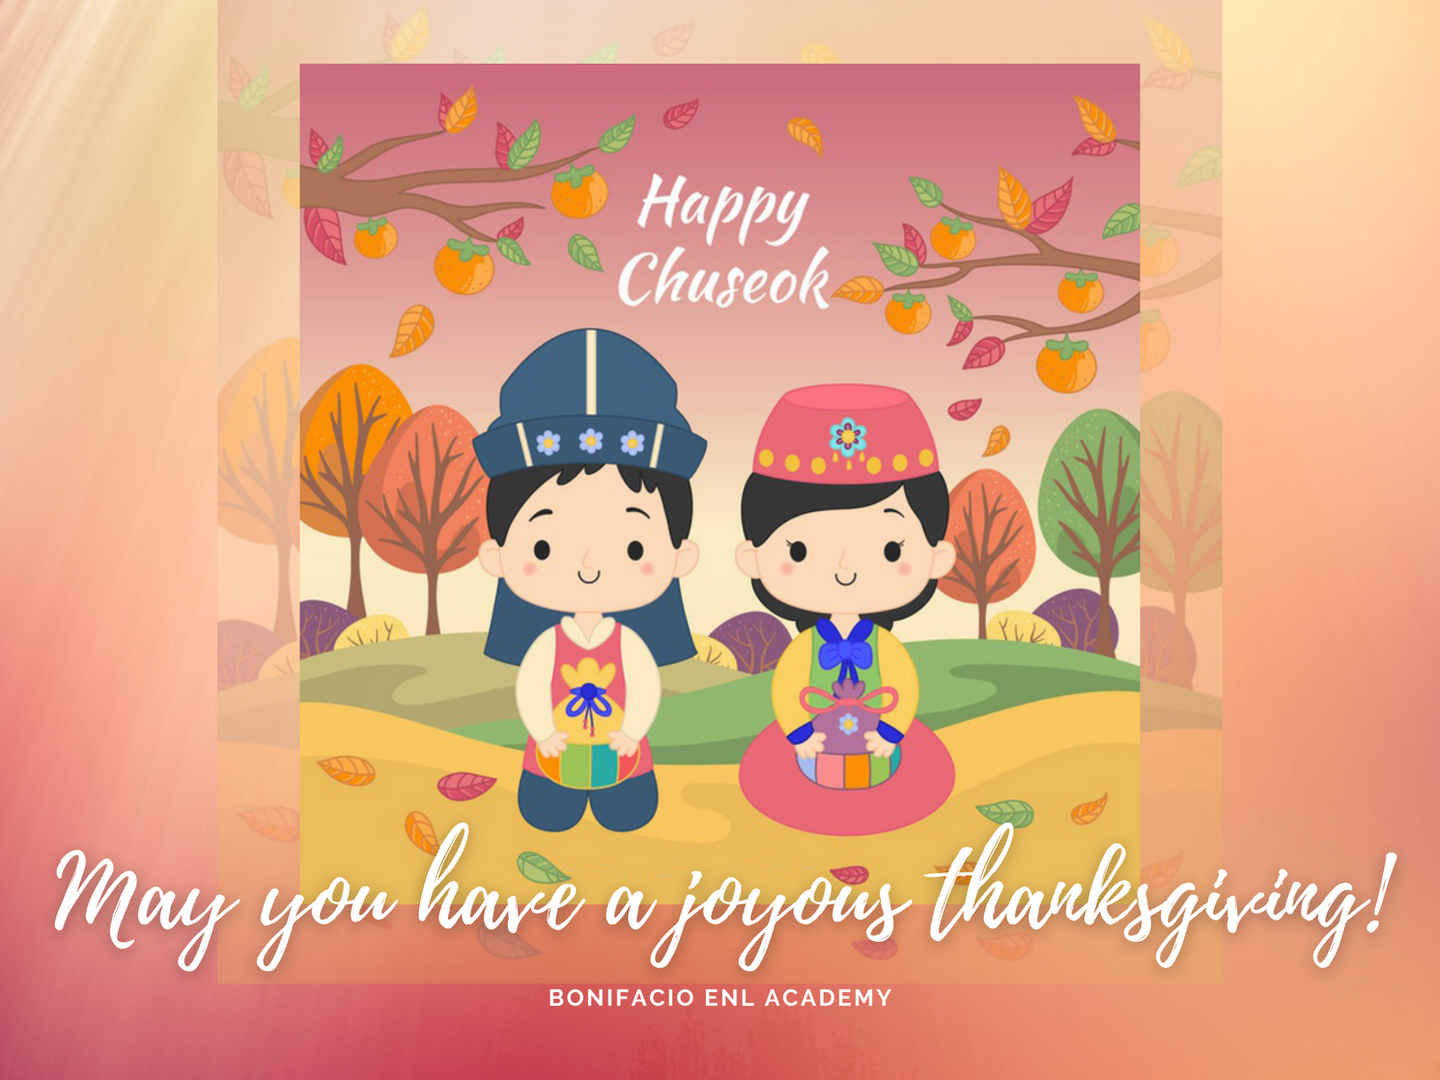 May you have a joyous thanksgiving!.png